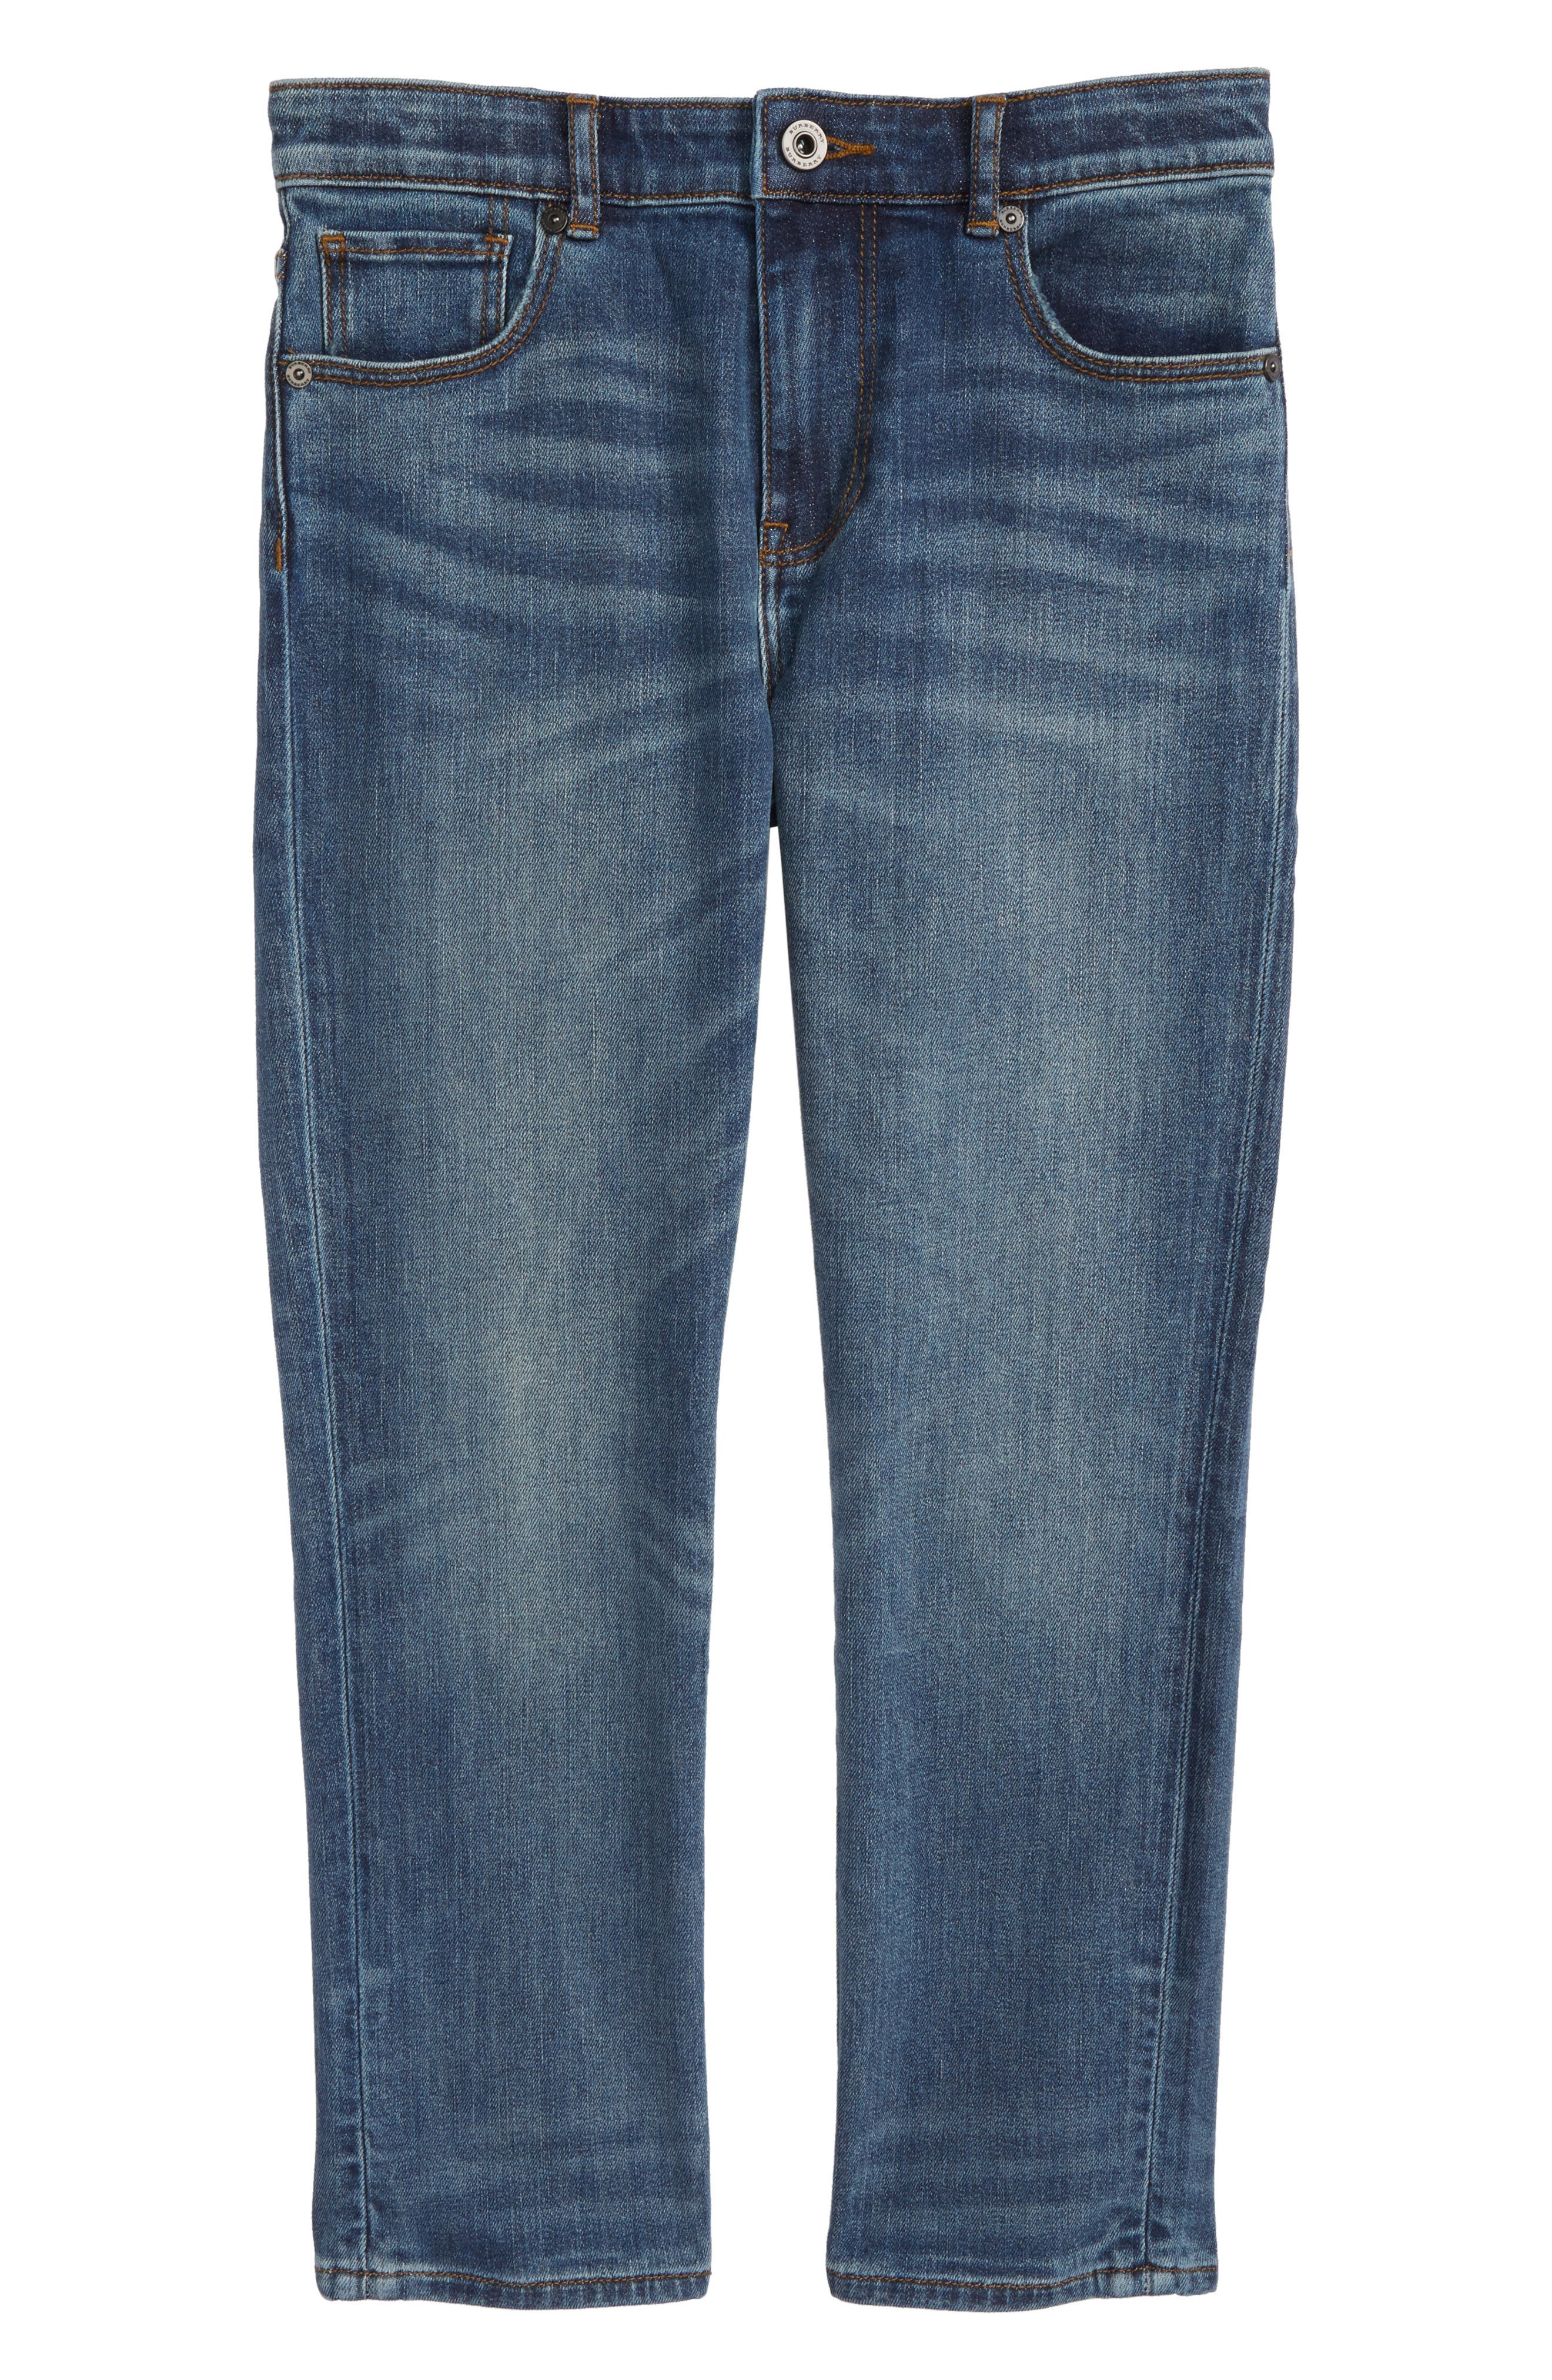 Relaxed Fit Jeans,                         Main,                         color, MEDIUM INDIGO